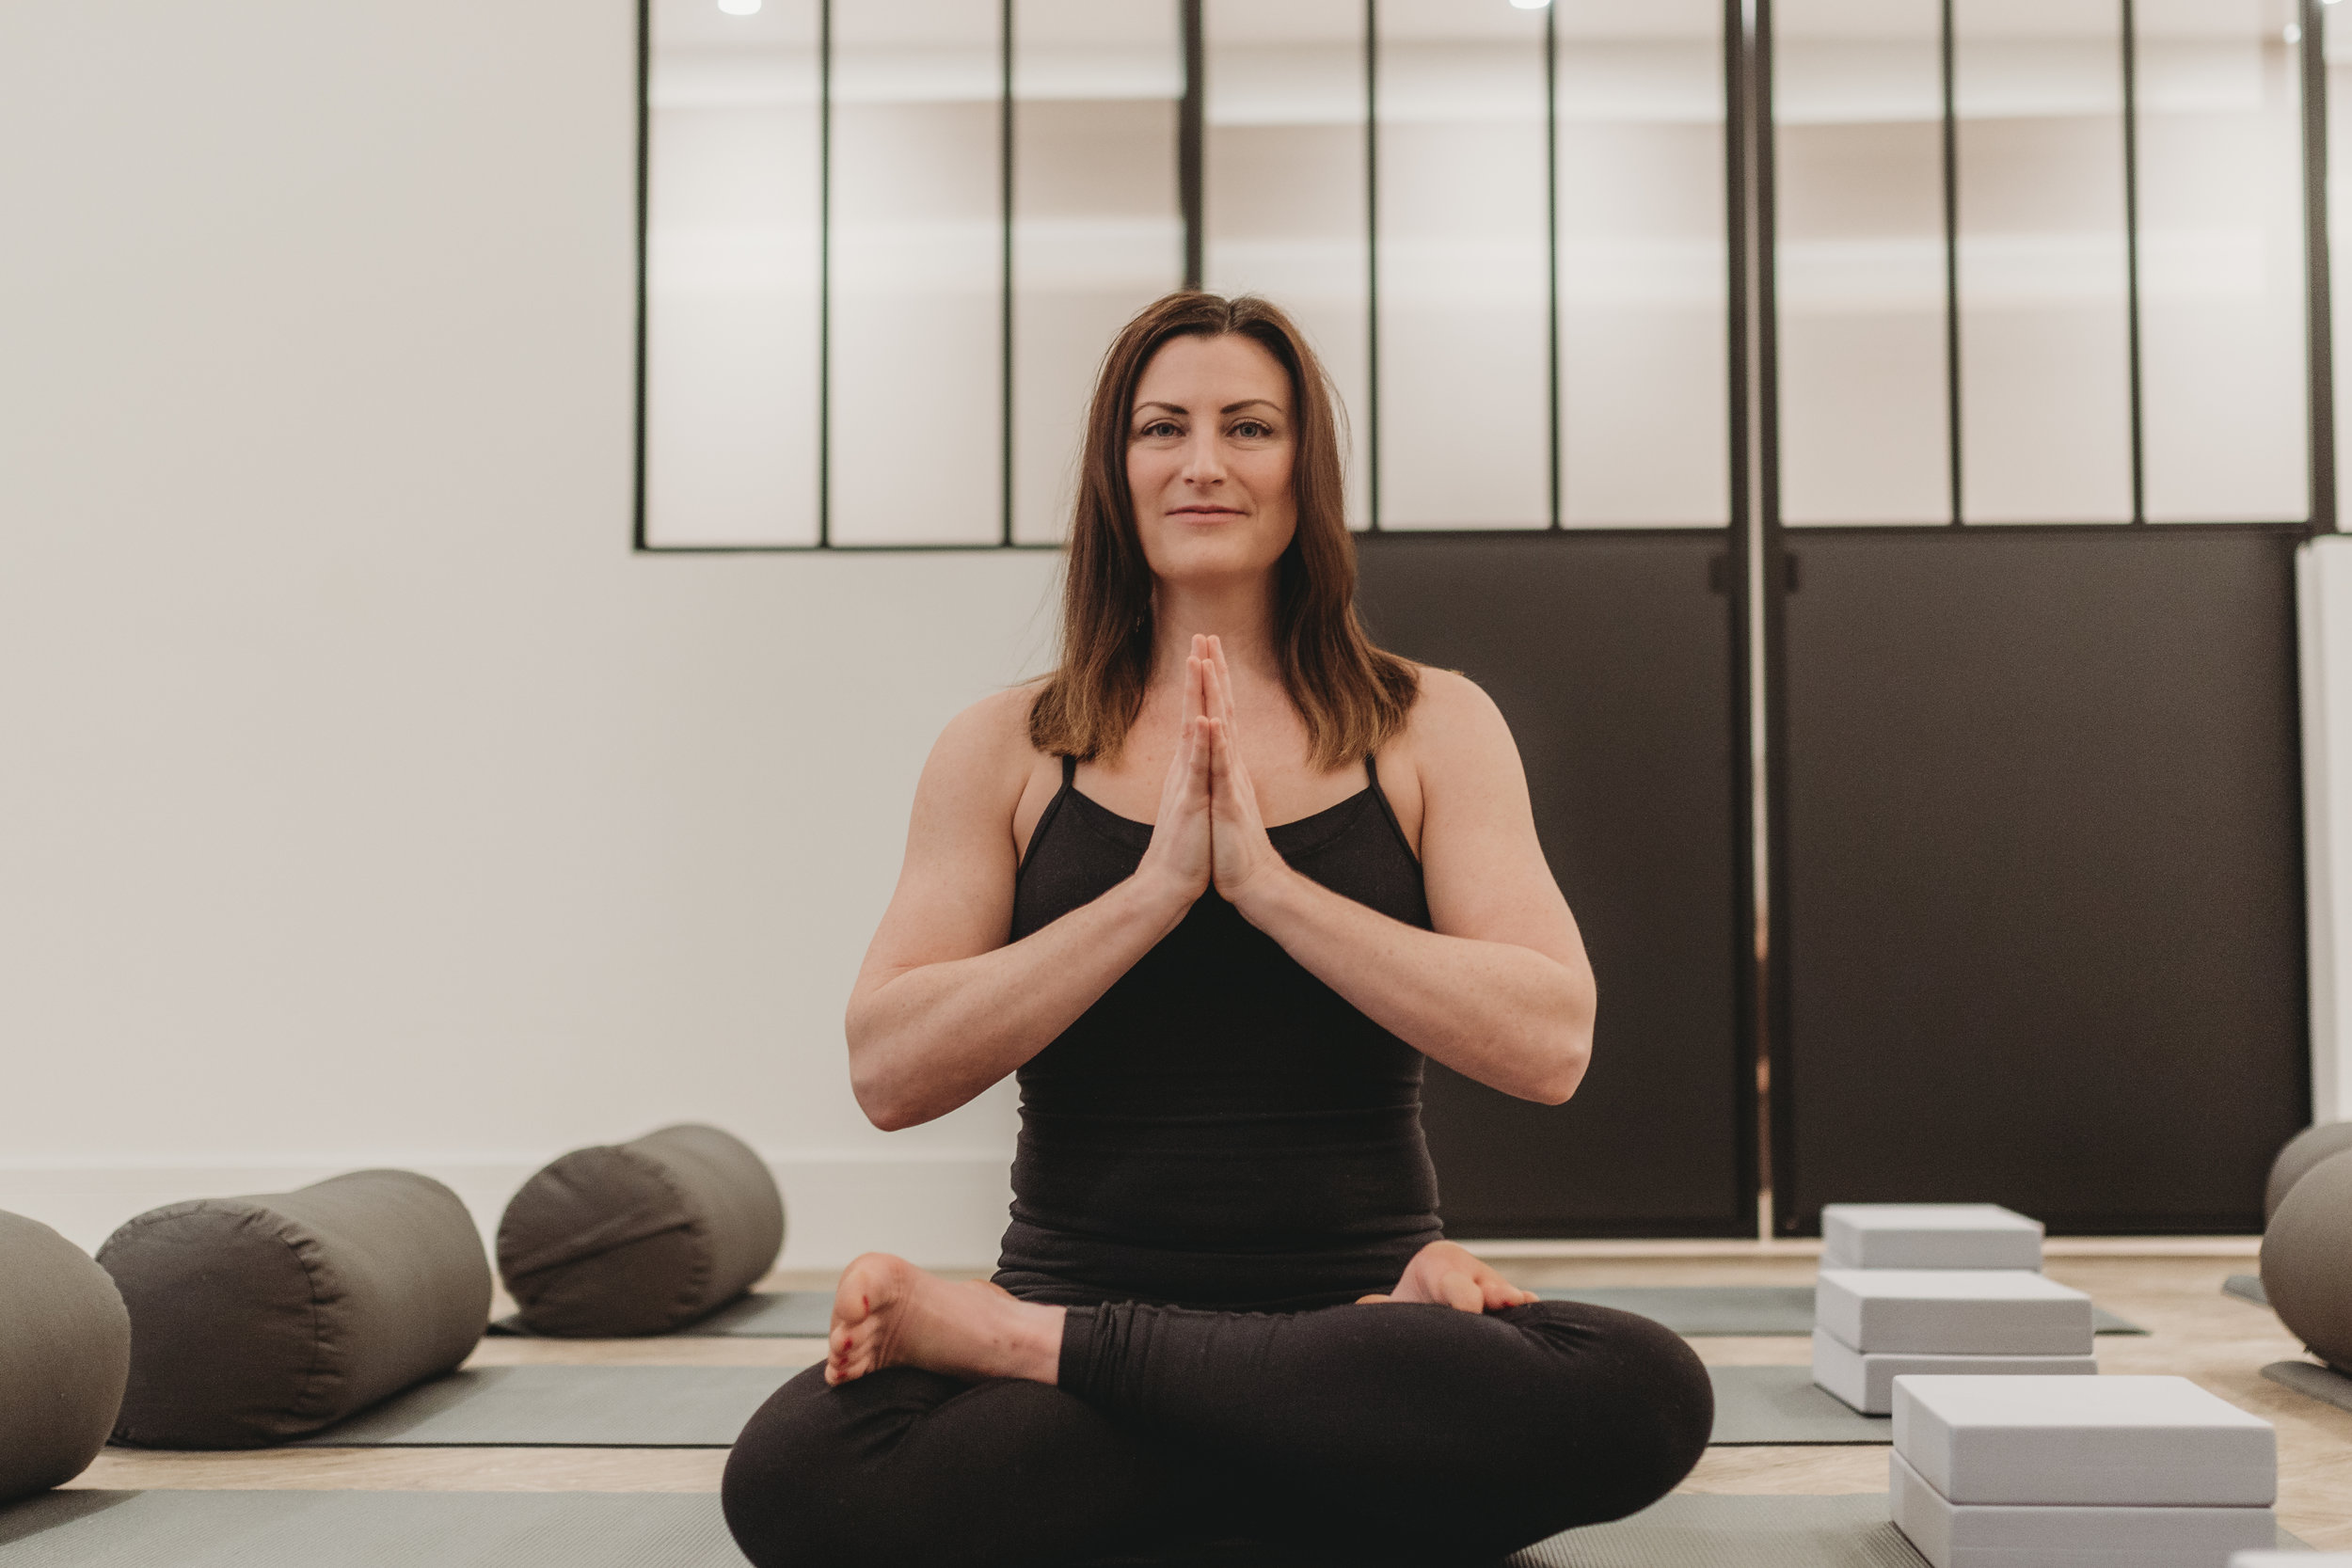 Alison    Alison has over a decade of experience in teaching Ashtanga, Vinyasa Flow and prenatal yoga as well as being a certified Massage Therapist. Alison is known for her creative flows and bringing a sense of humour to the mat to encourage her students to be easy on themselves.